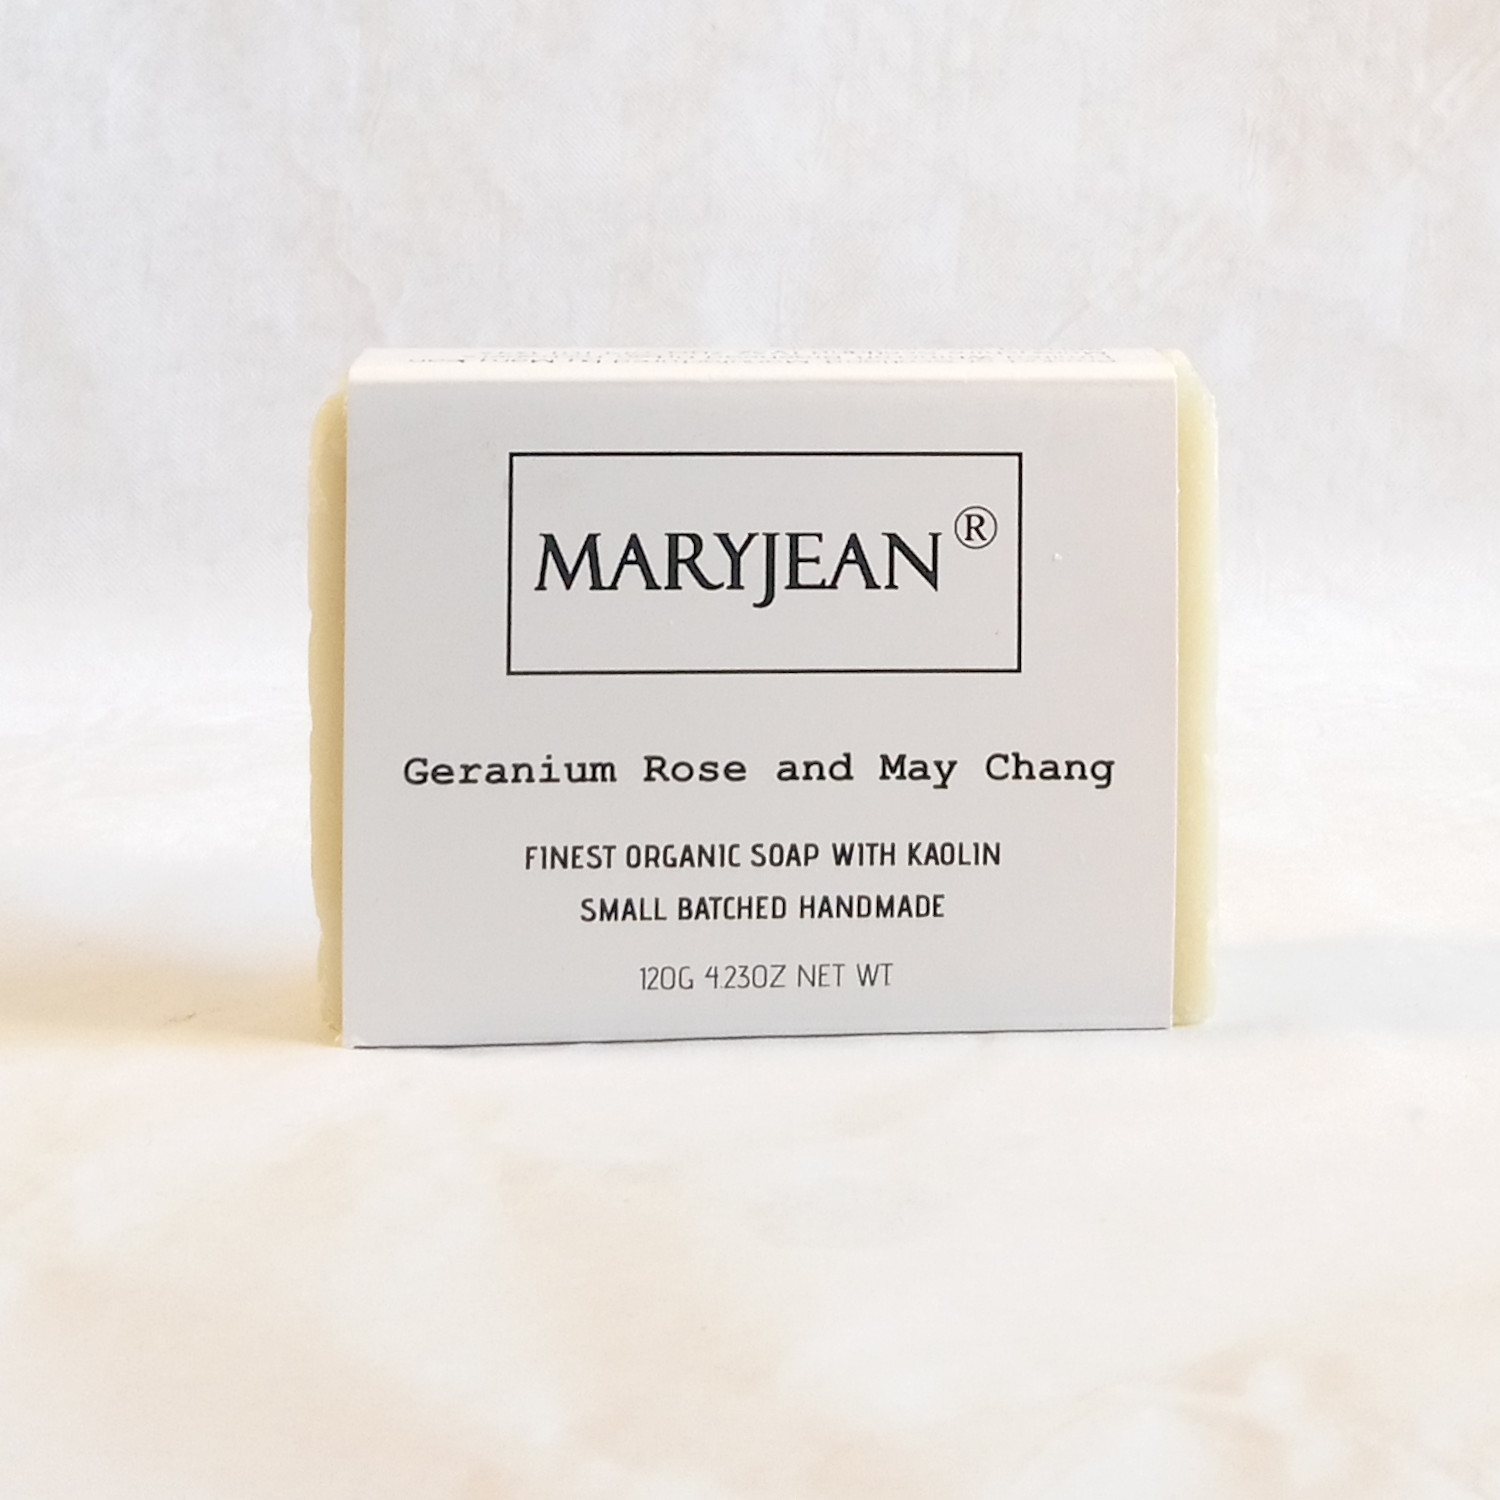 Organic Scottish Geranium May Chang Gentlemen's Shaving Soap Handmade With Kaolin Enhance your skin health with this wet shaving natural shaving soap bar for sensitive and all skin types with moisturising aromatherapy Olive oil and Kaolin clay